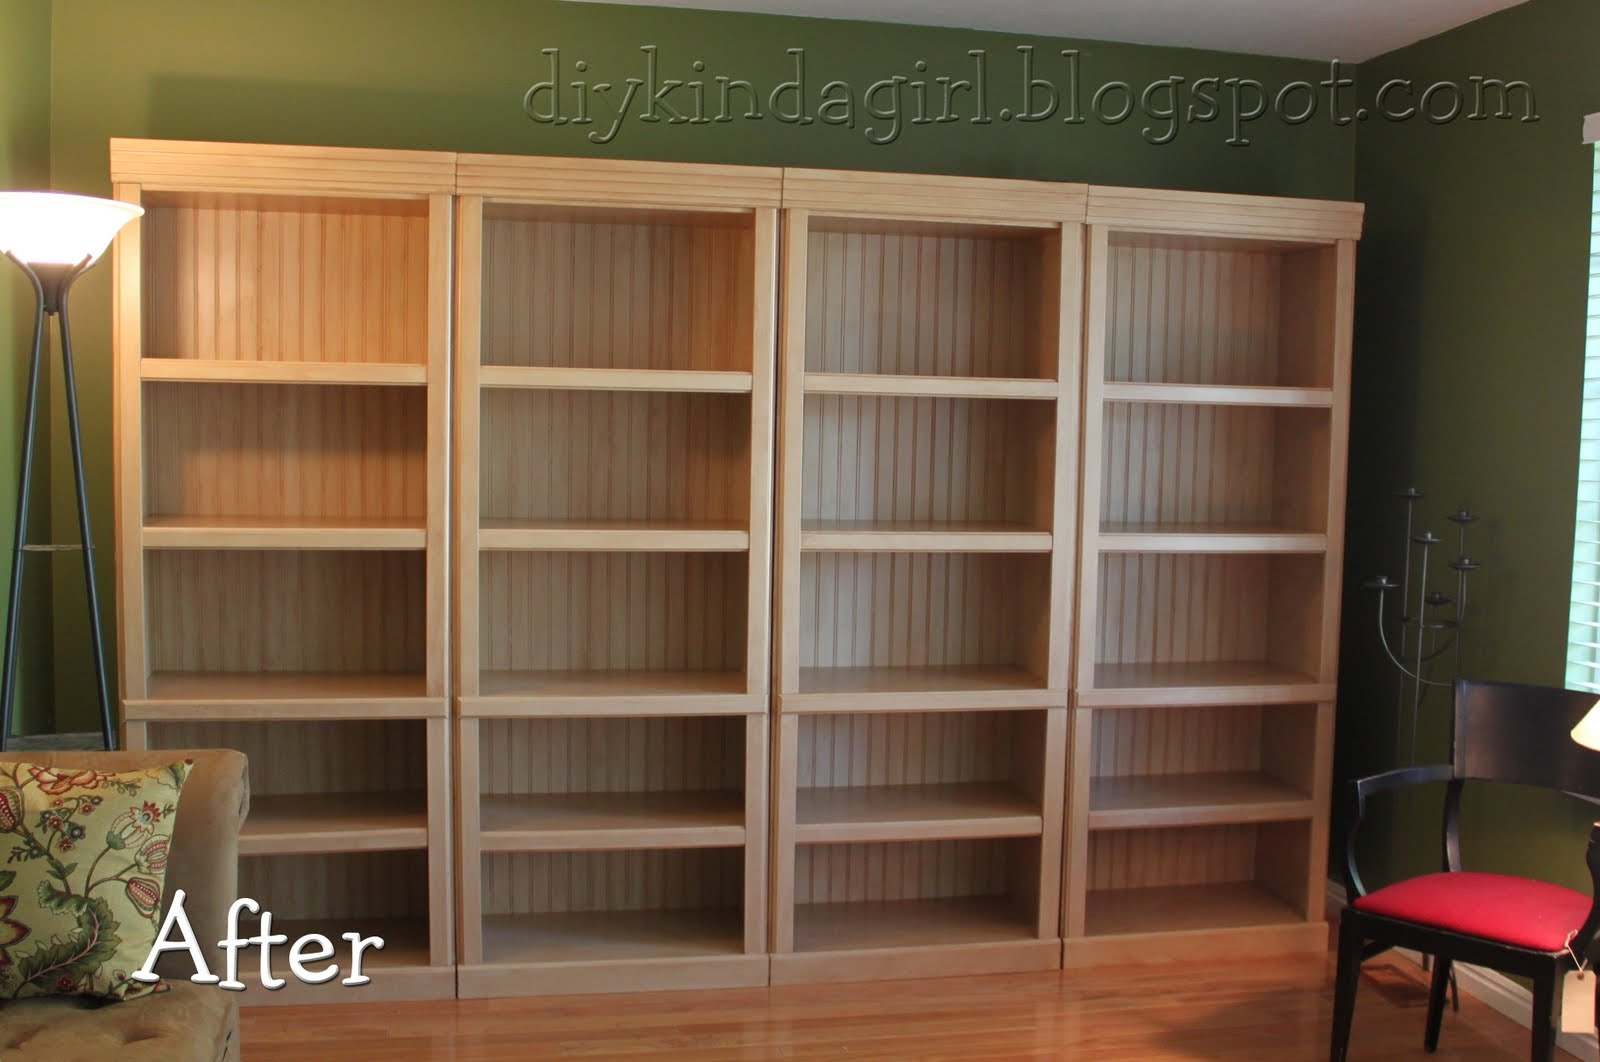 Diy Kinda Girl How To Paint Laminate Within Painted Wood Bookcase (#4 of 15)